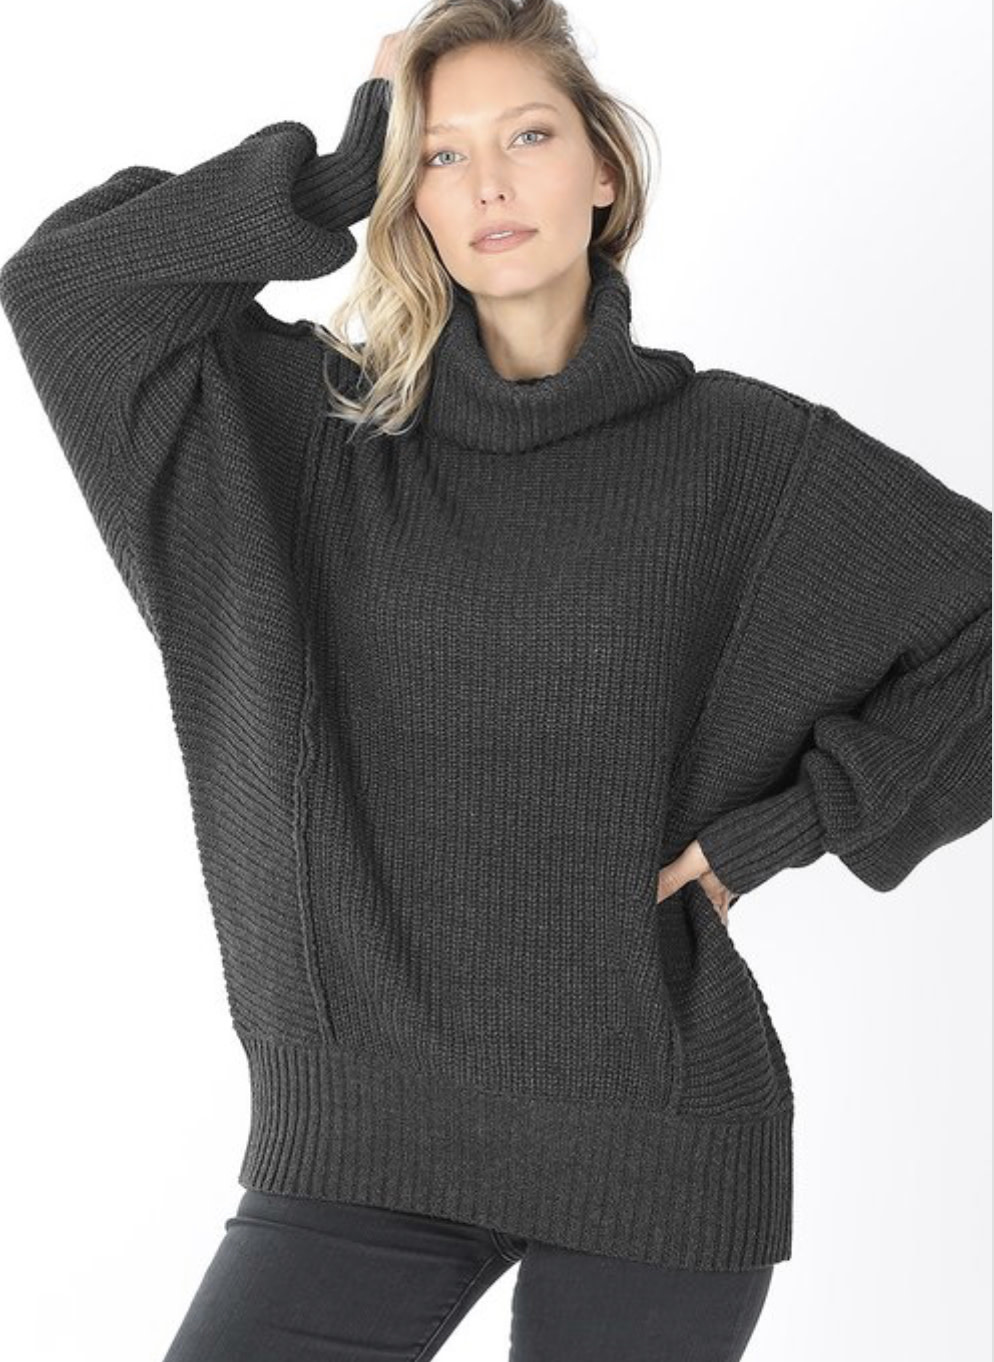 The Erin Turtleneck